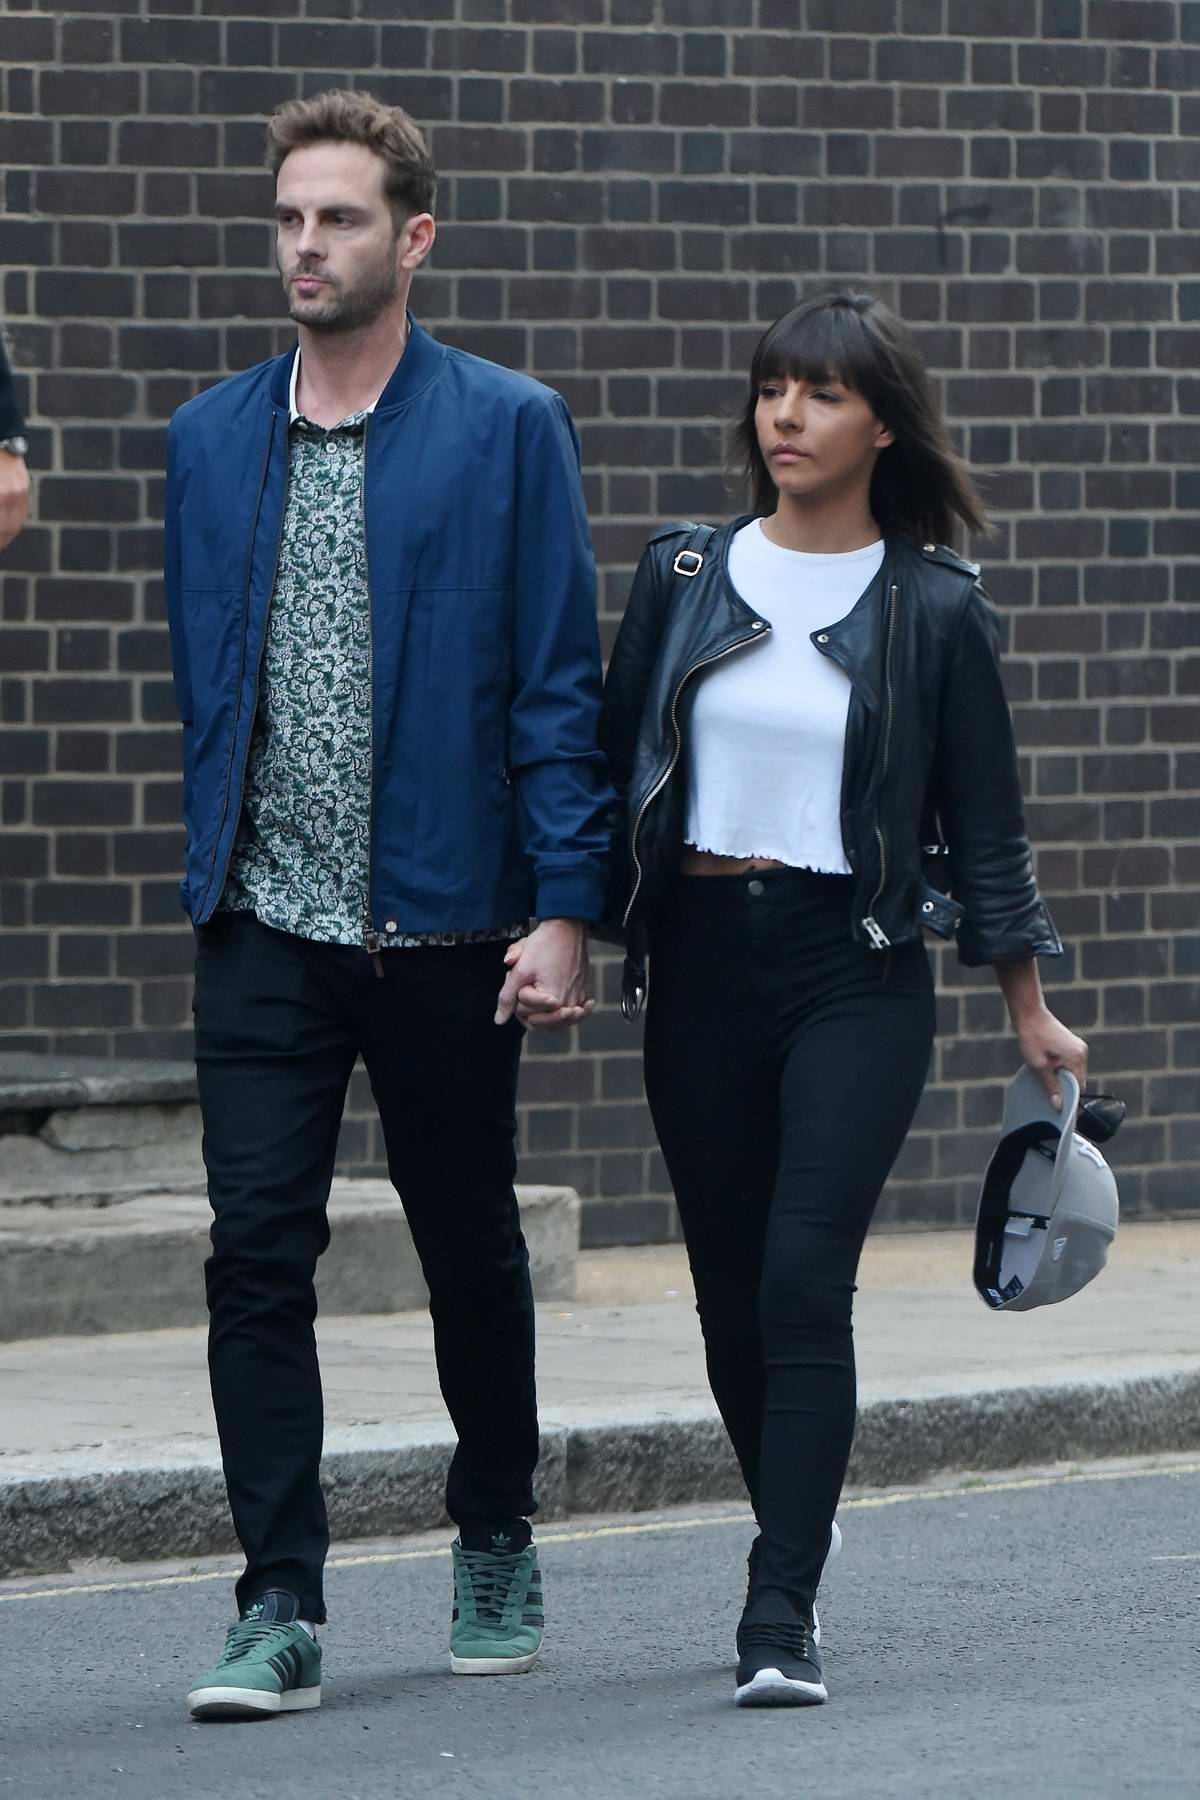 Roxanne Pallett seen for the first time after leaving Celebrity Big Brother House in London, UK